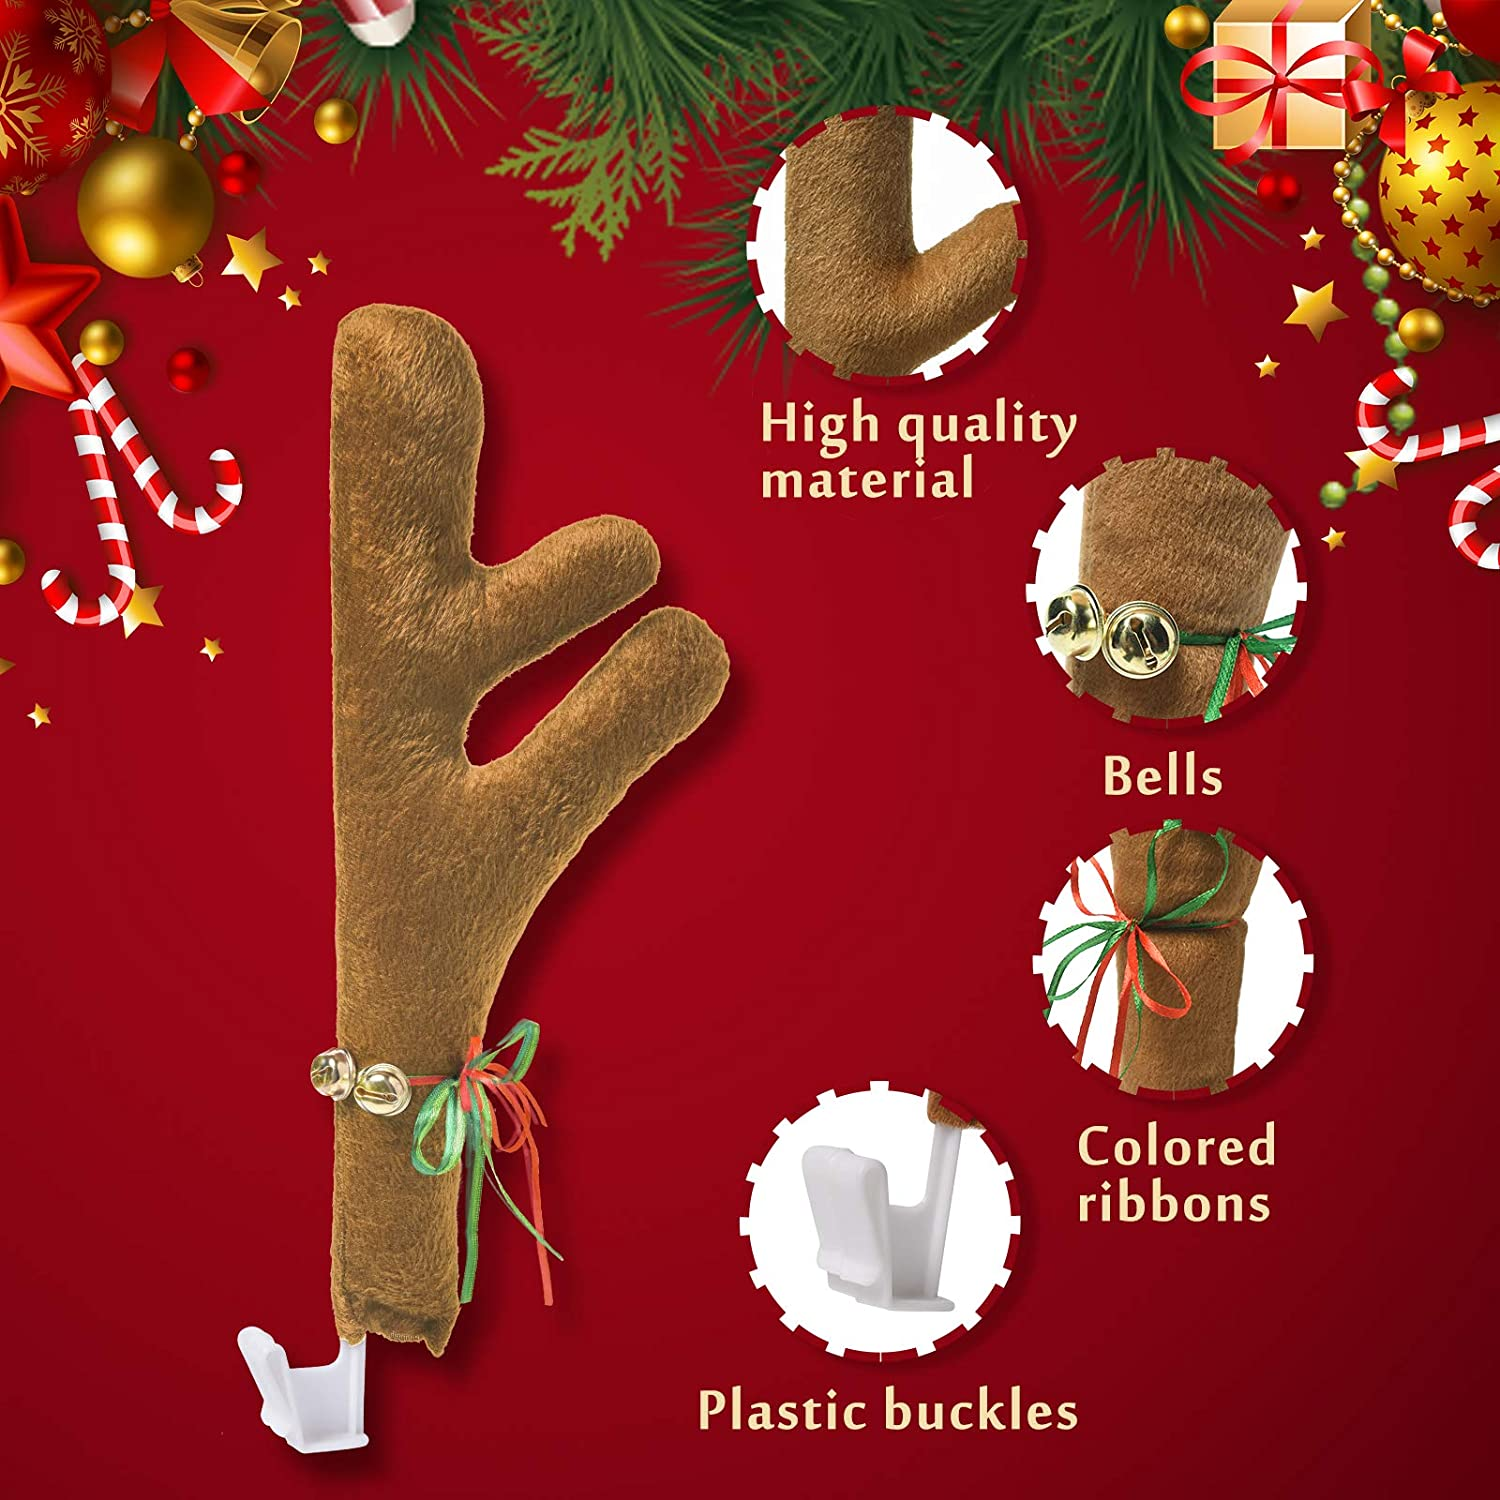 Auto Accessories Decoration Kit for Car Windows and Front Grille Reindeer Jingle Bell Christmas Costume Orange Xmas Gift Set Joyjoz Christmas Car Reindeer Antler Decoration Kit with Nose